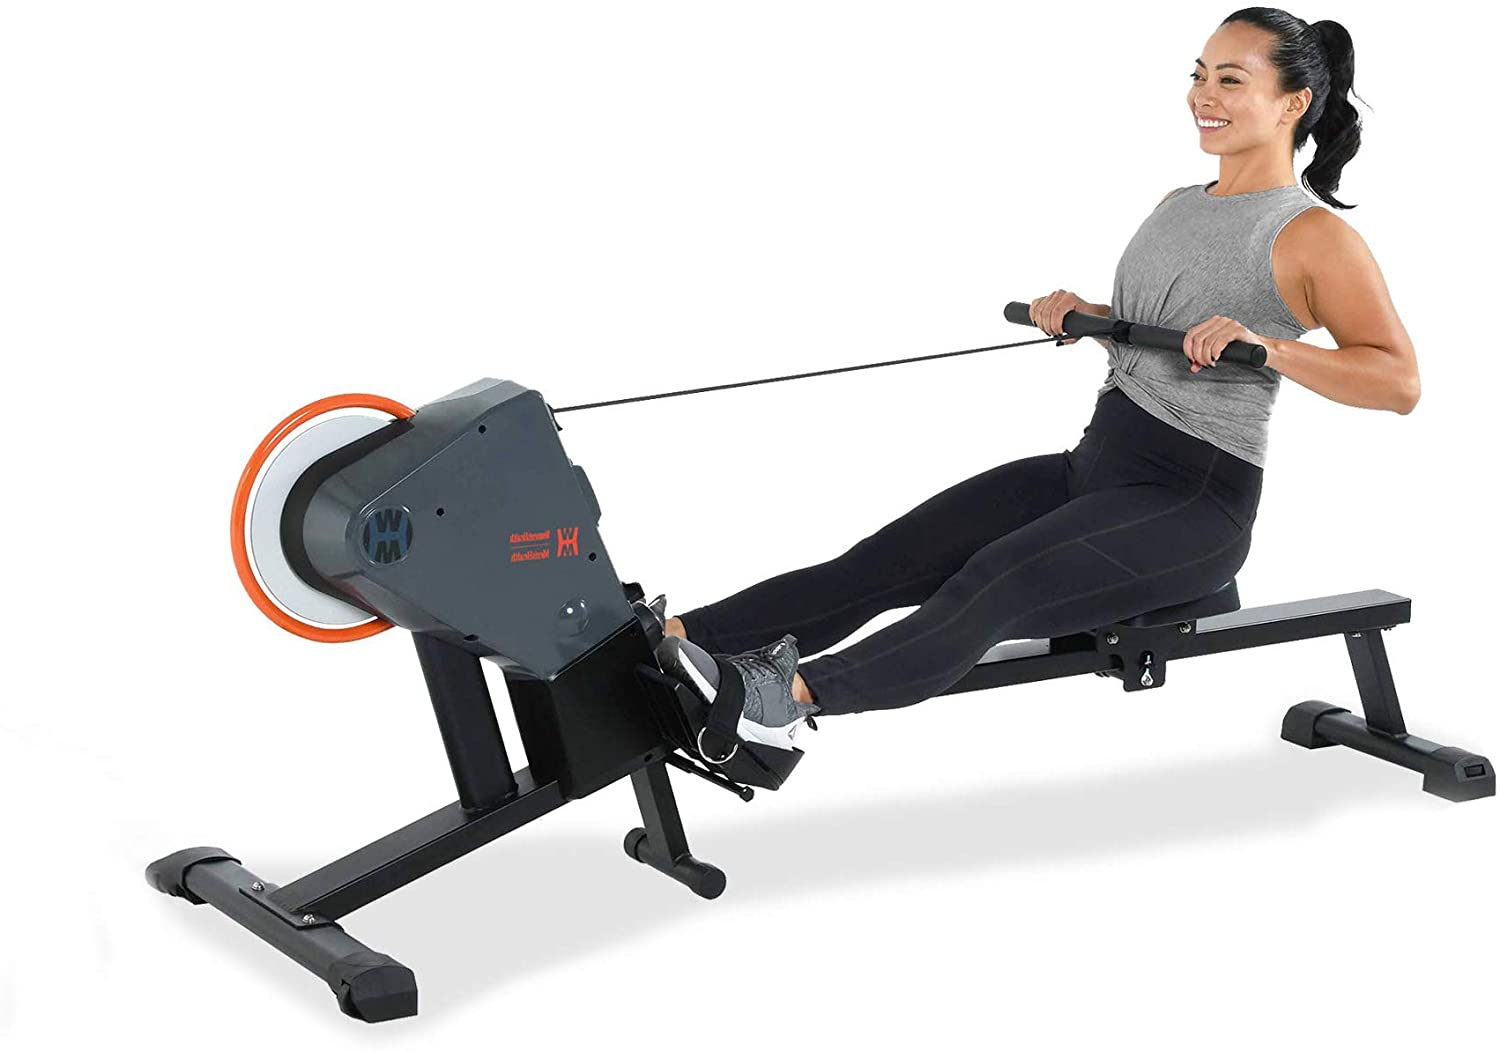 10 best rowing machines for whole body home exercise 2021 herstylecode 3 10 Best Rowing Machines for Whole Body Home Exercise 2021